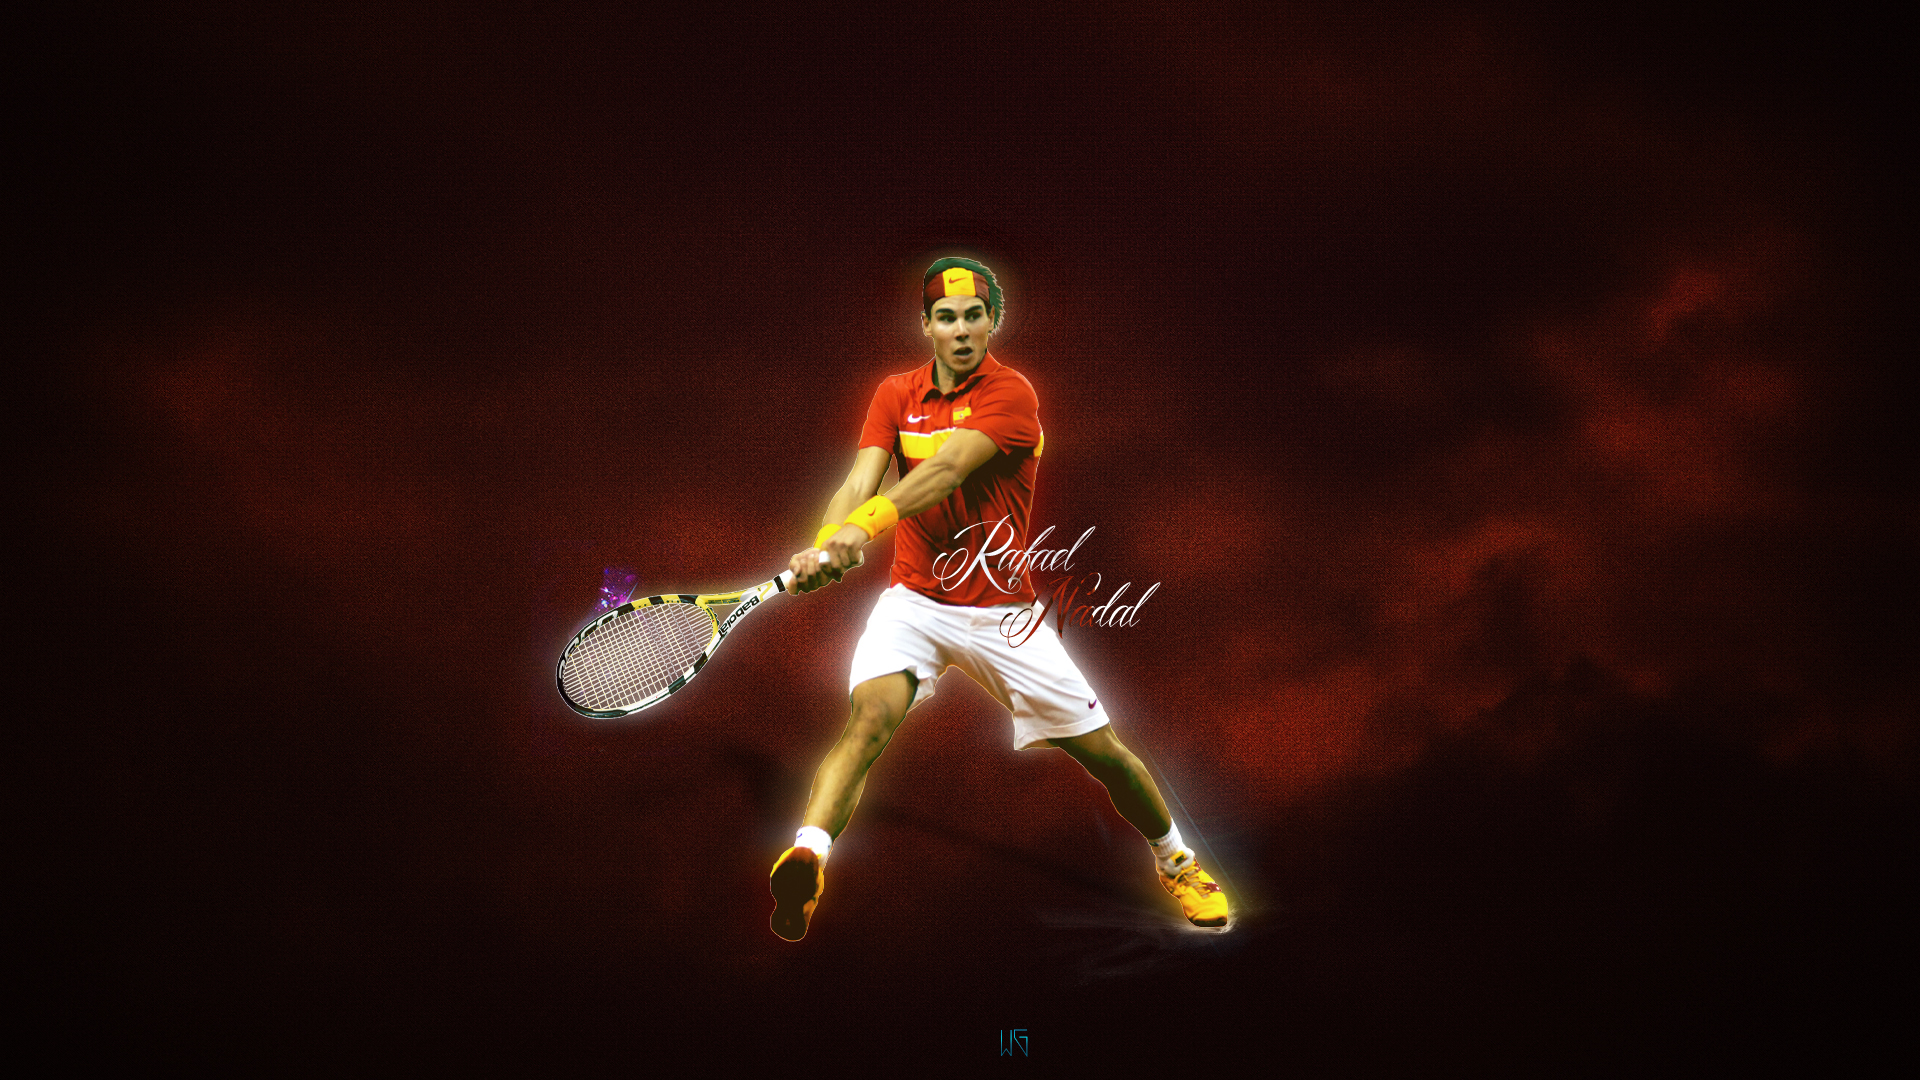 Rafael Nadal Hd Wallpaper Background Image 1920x1080 Id 993205 Wallpaper Abyss